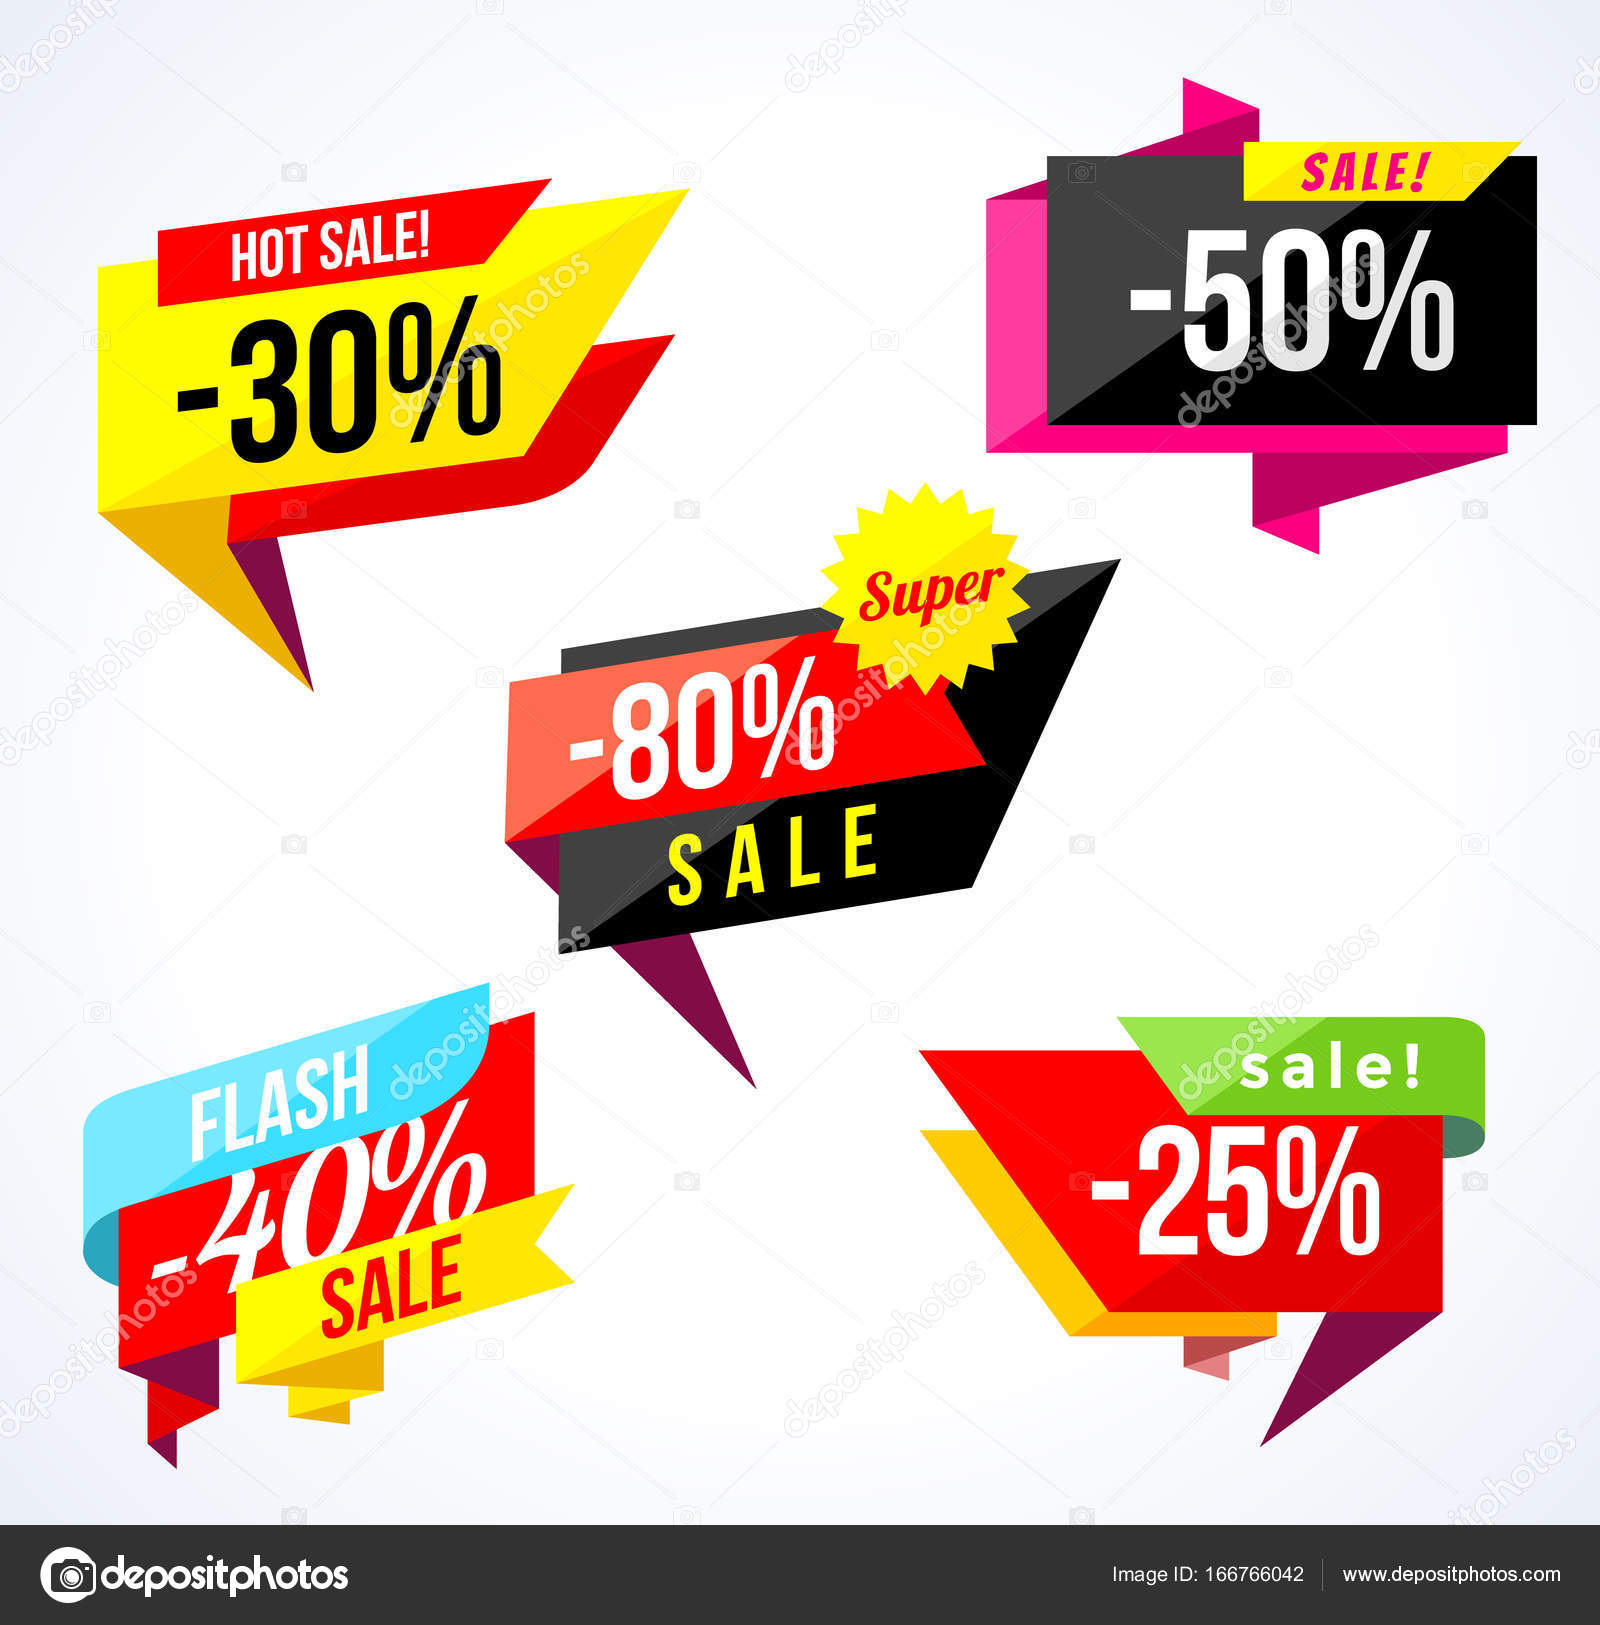 Colored Stickers And Banners Geometric Shapes Confetti Big Set Of Beautiful Discount Promotion Advertising Element Sale Banner Tag